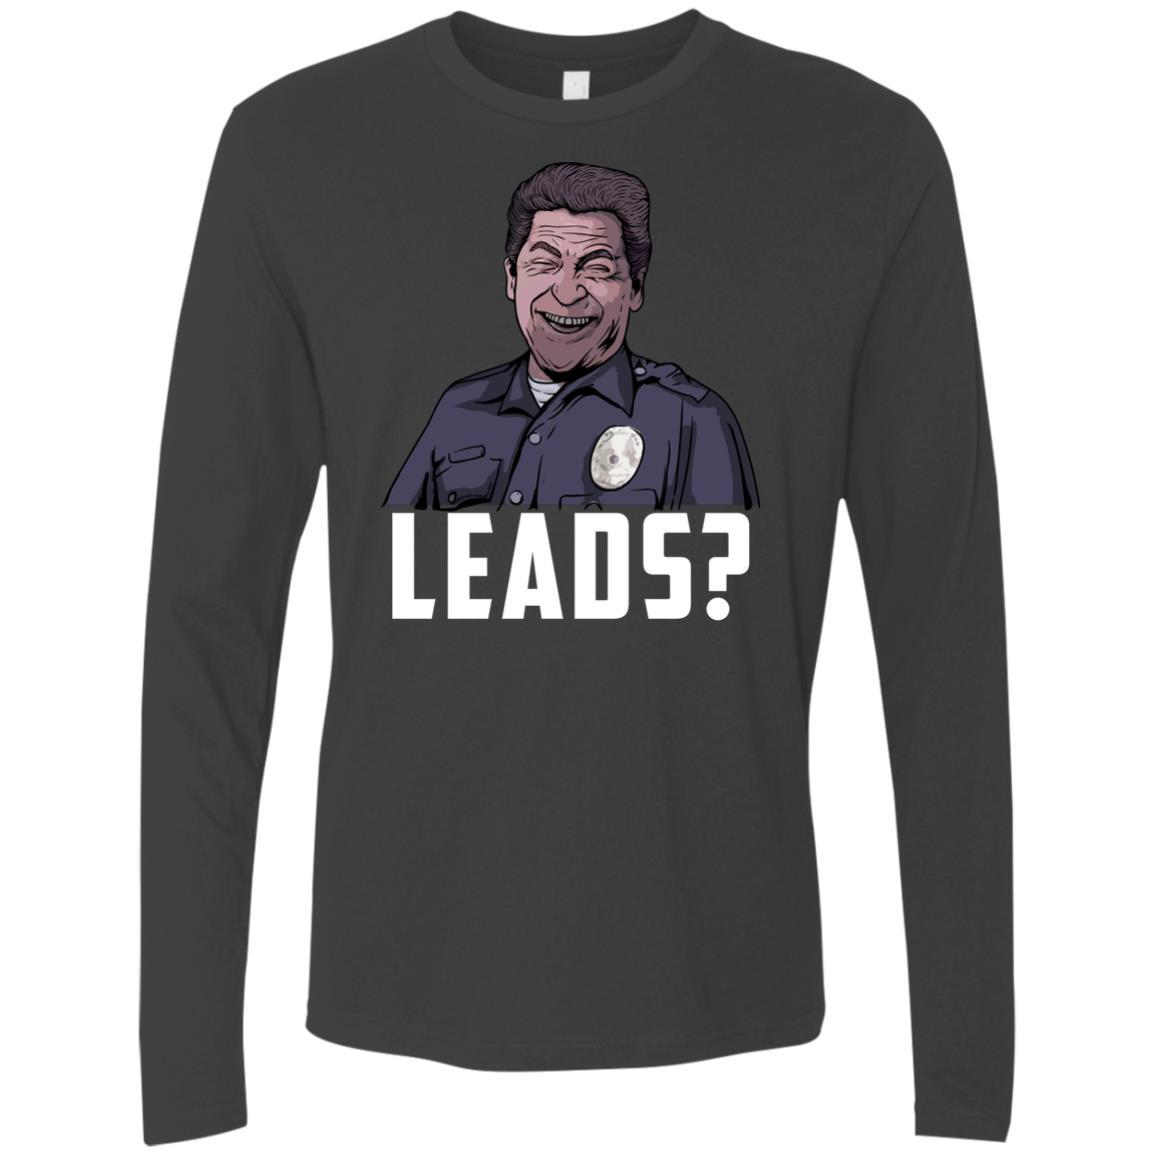 T-Shirts - Leads Premium Long Sleeve